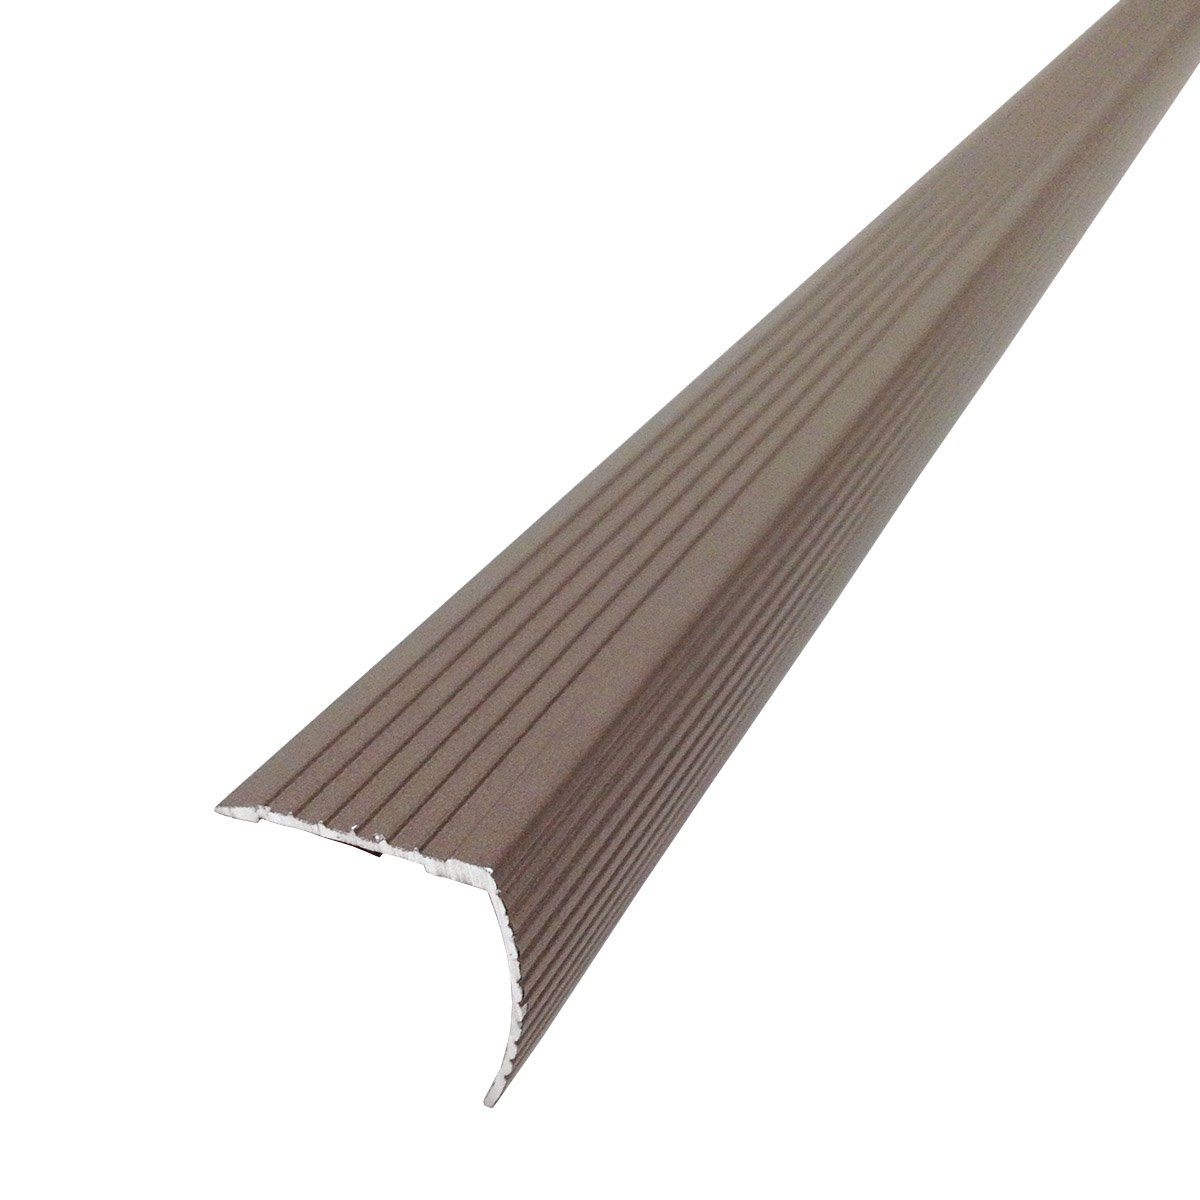 M-D Building Products 66266 1-1//8-Inch by 1-1//8-Inch by 72-Inch Stair Edging Smooth